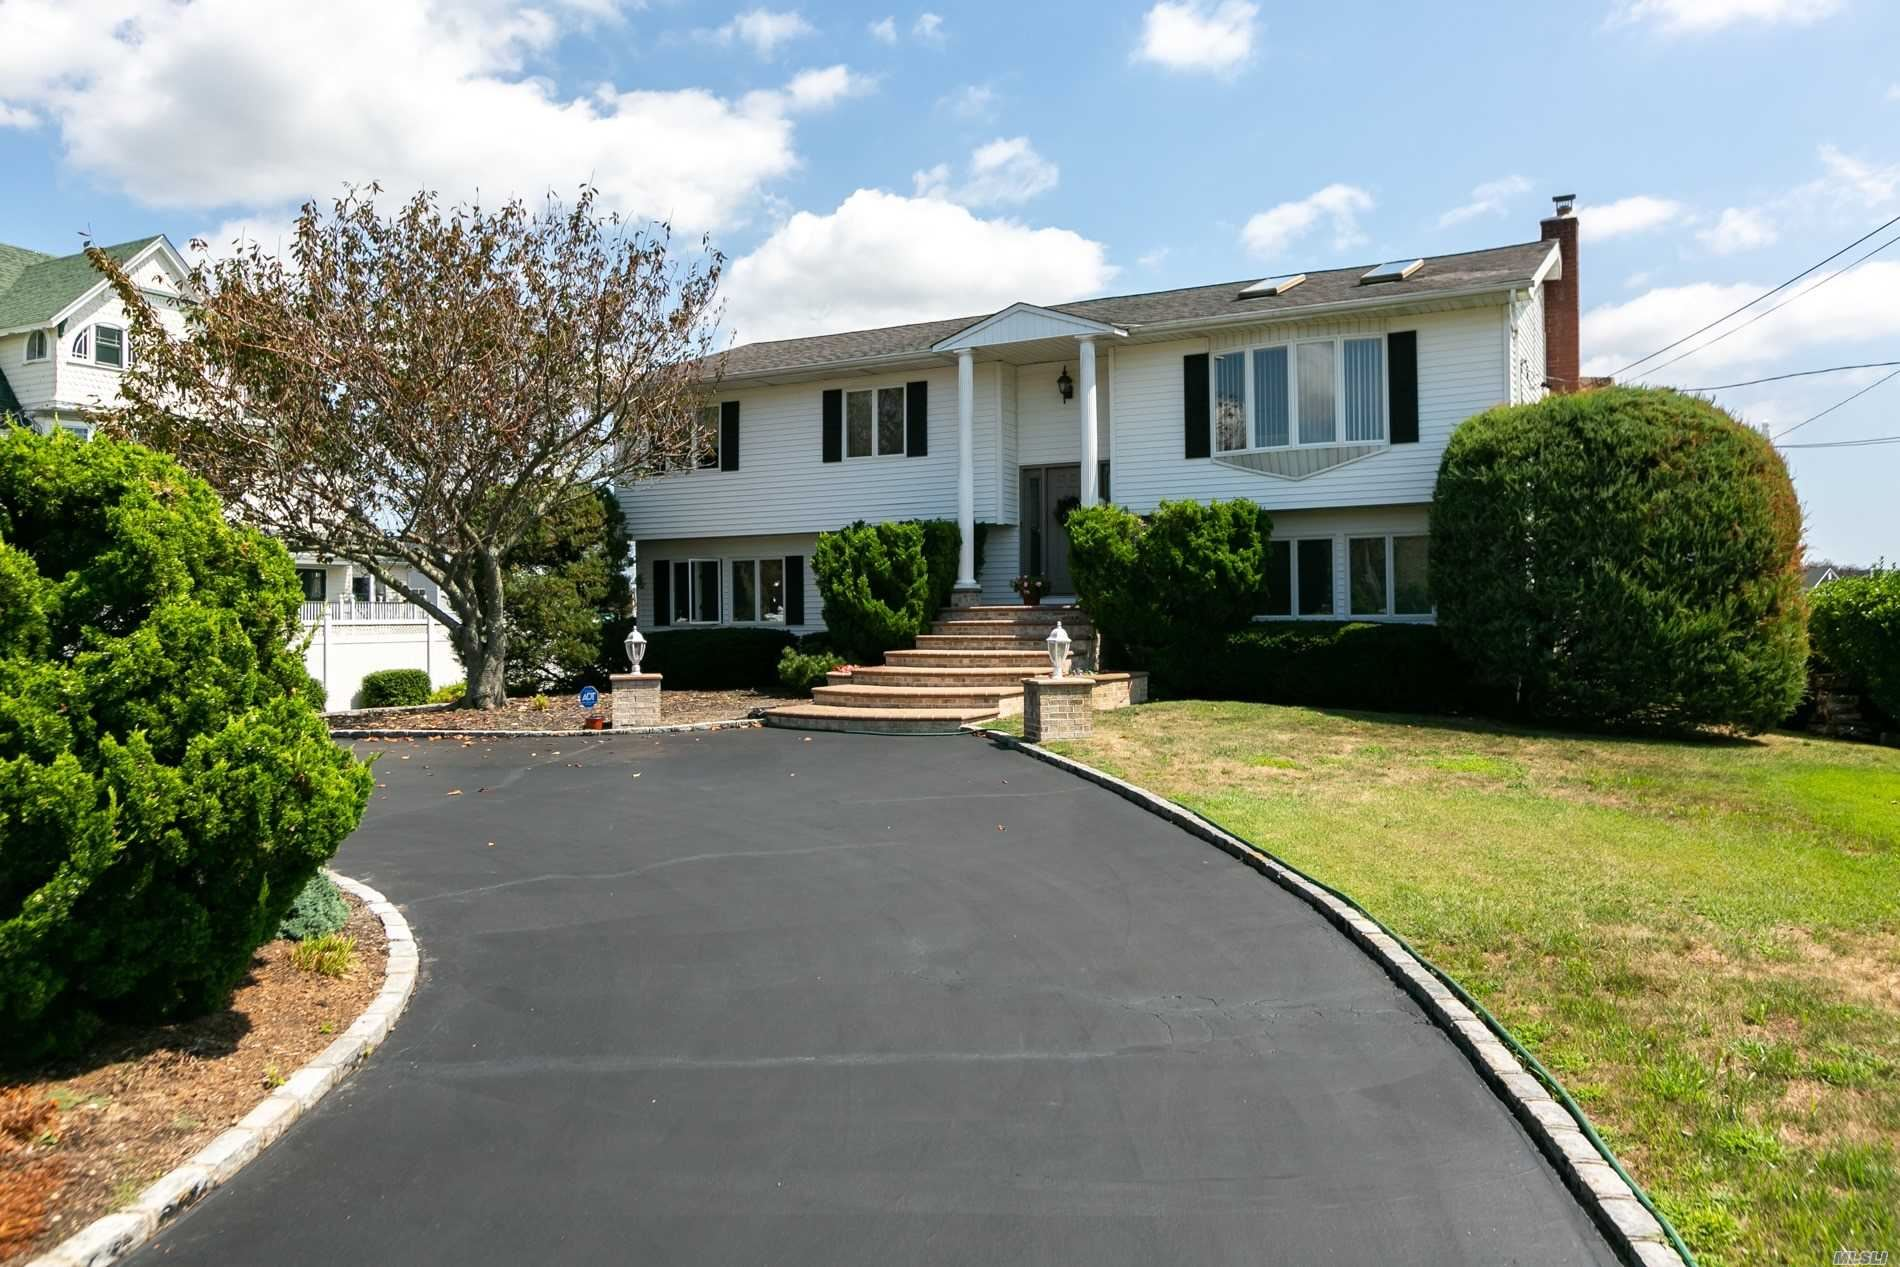 176 Clocks Boulevard, Massapequa, NY 11758 - MLS#: 3232022